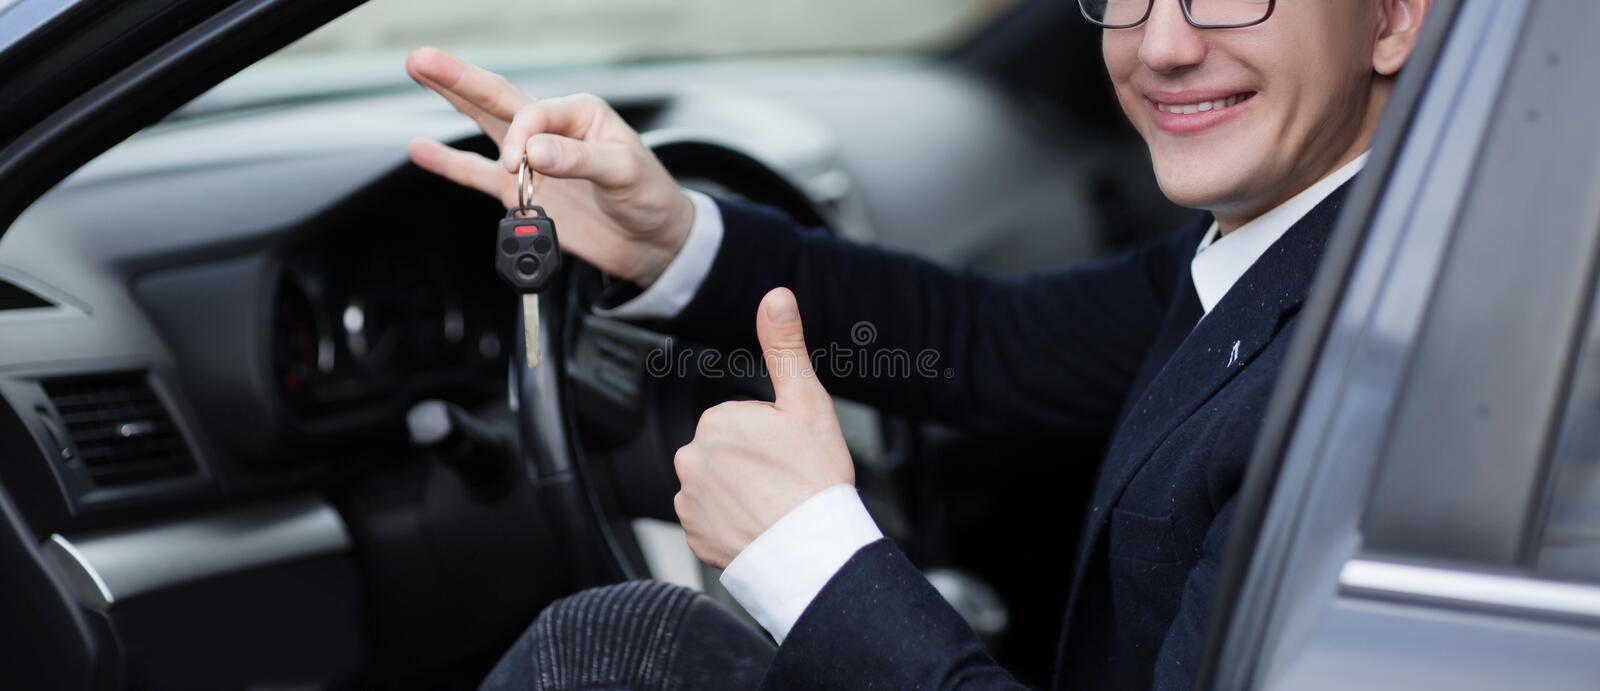 Happy driver showing thumb up while sitting in his car royalty free stock images